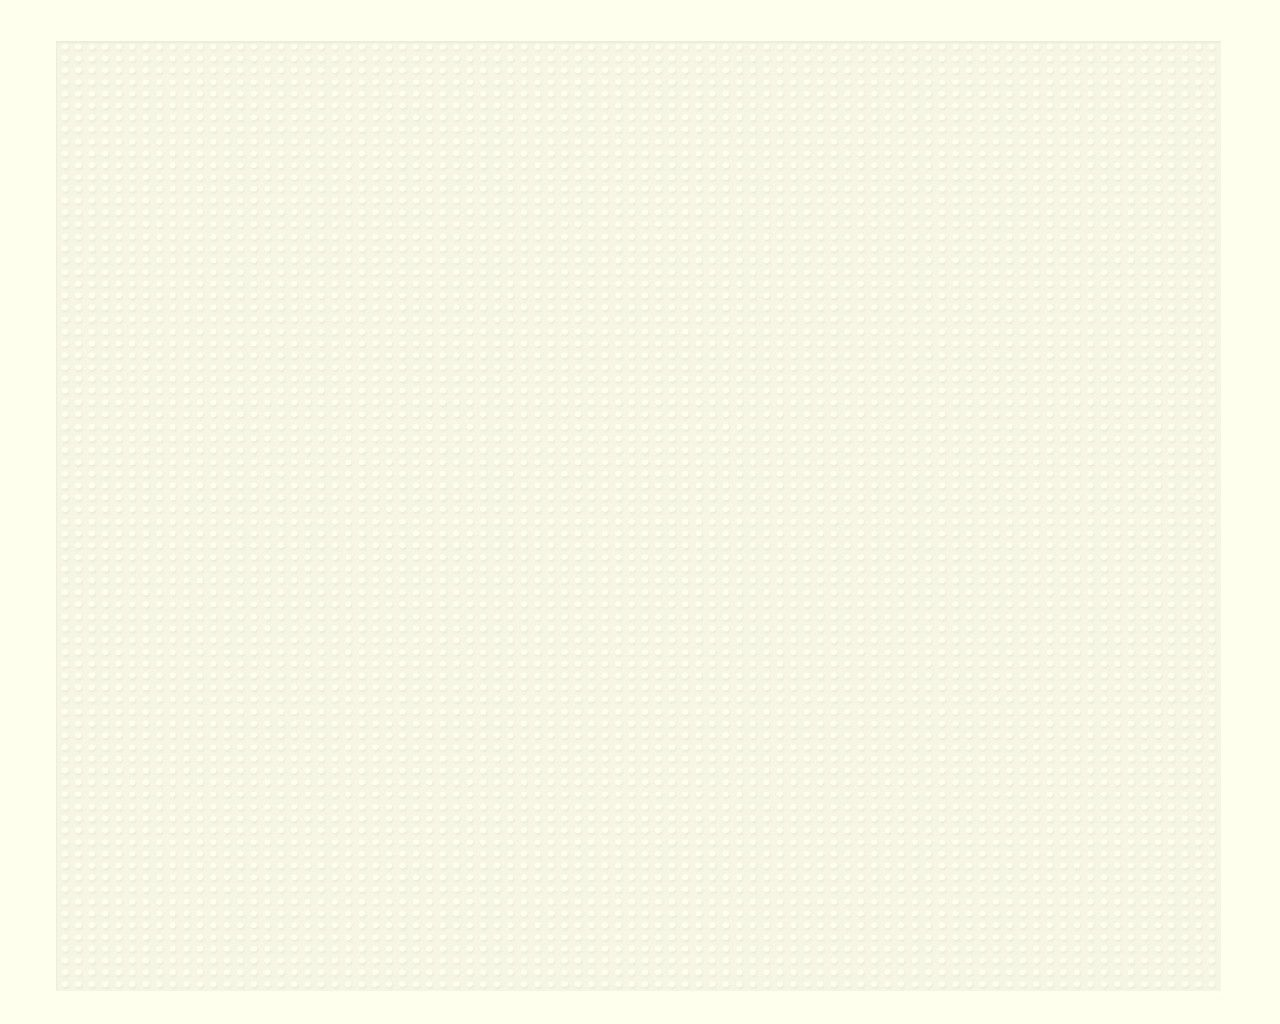 Cream Colored Backgrounds 1280x1024